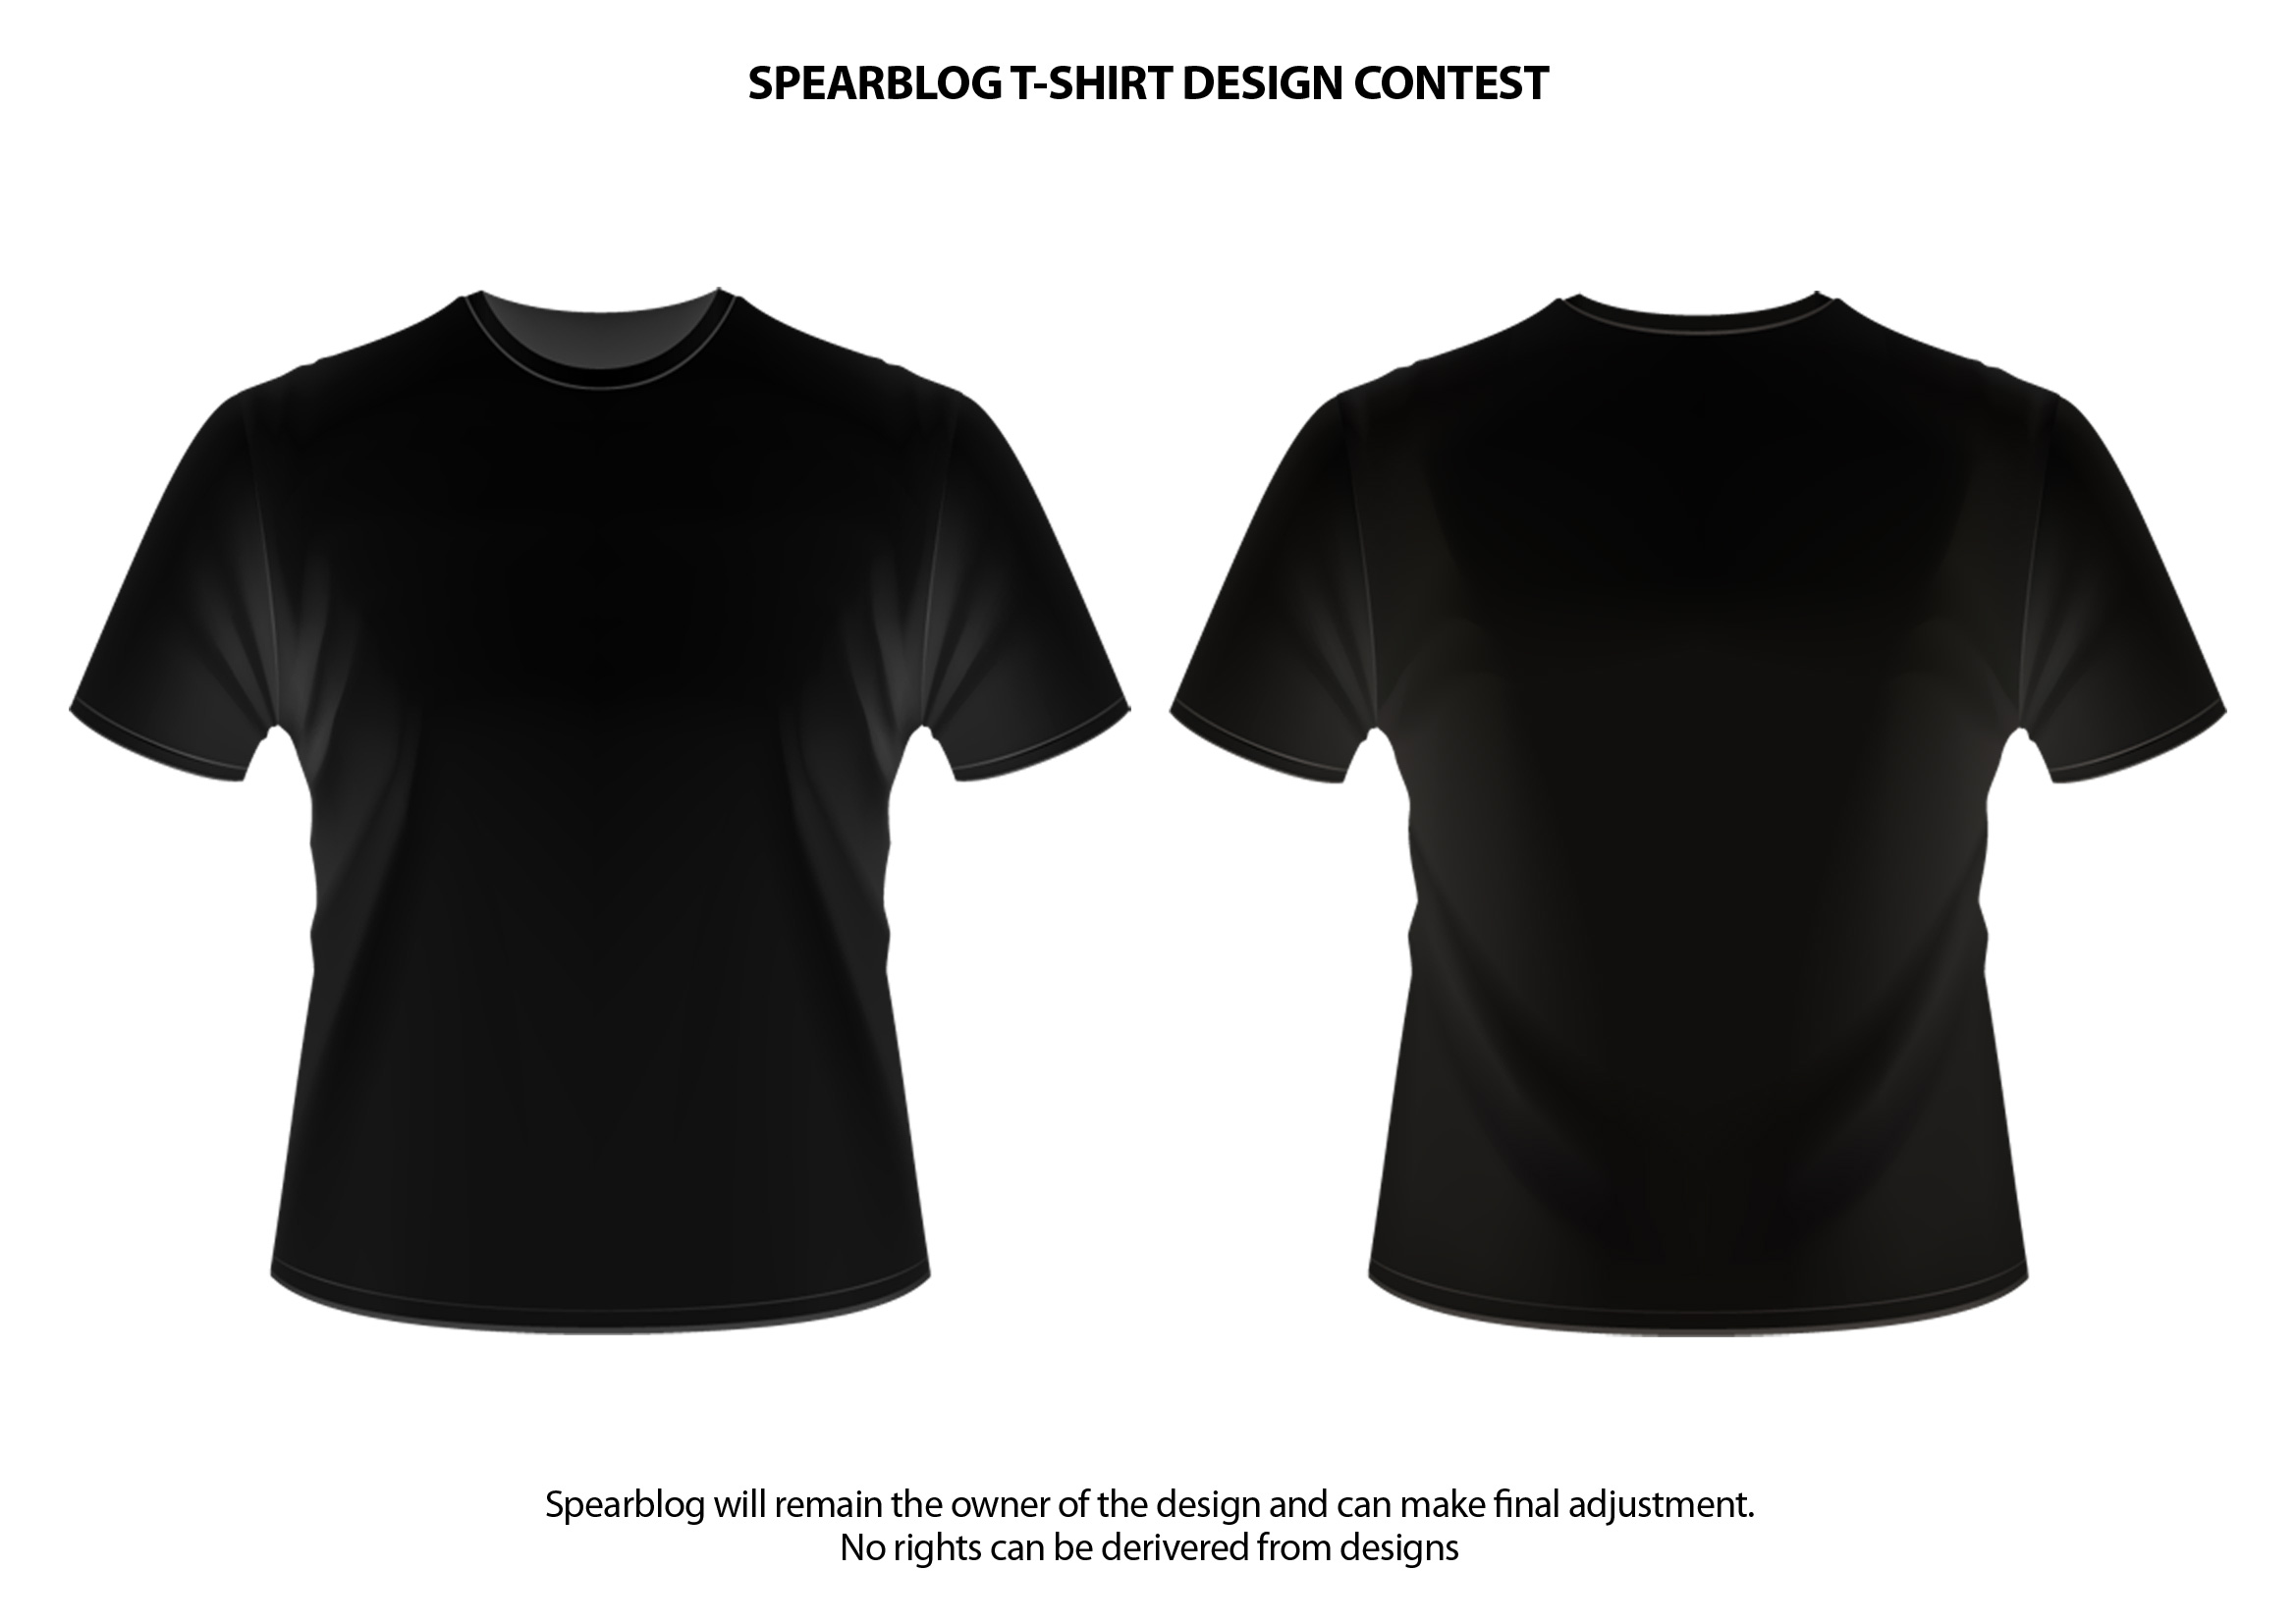 Black Shirt Design